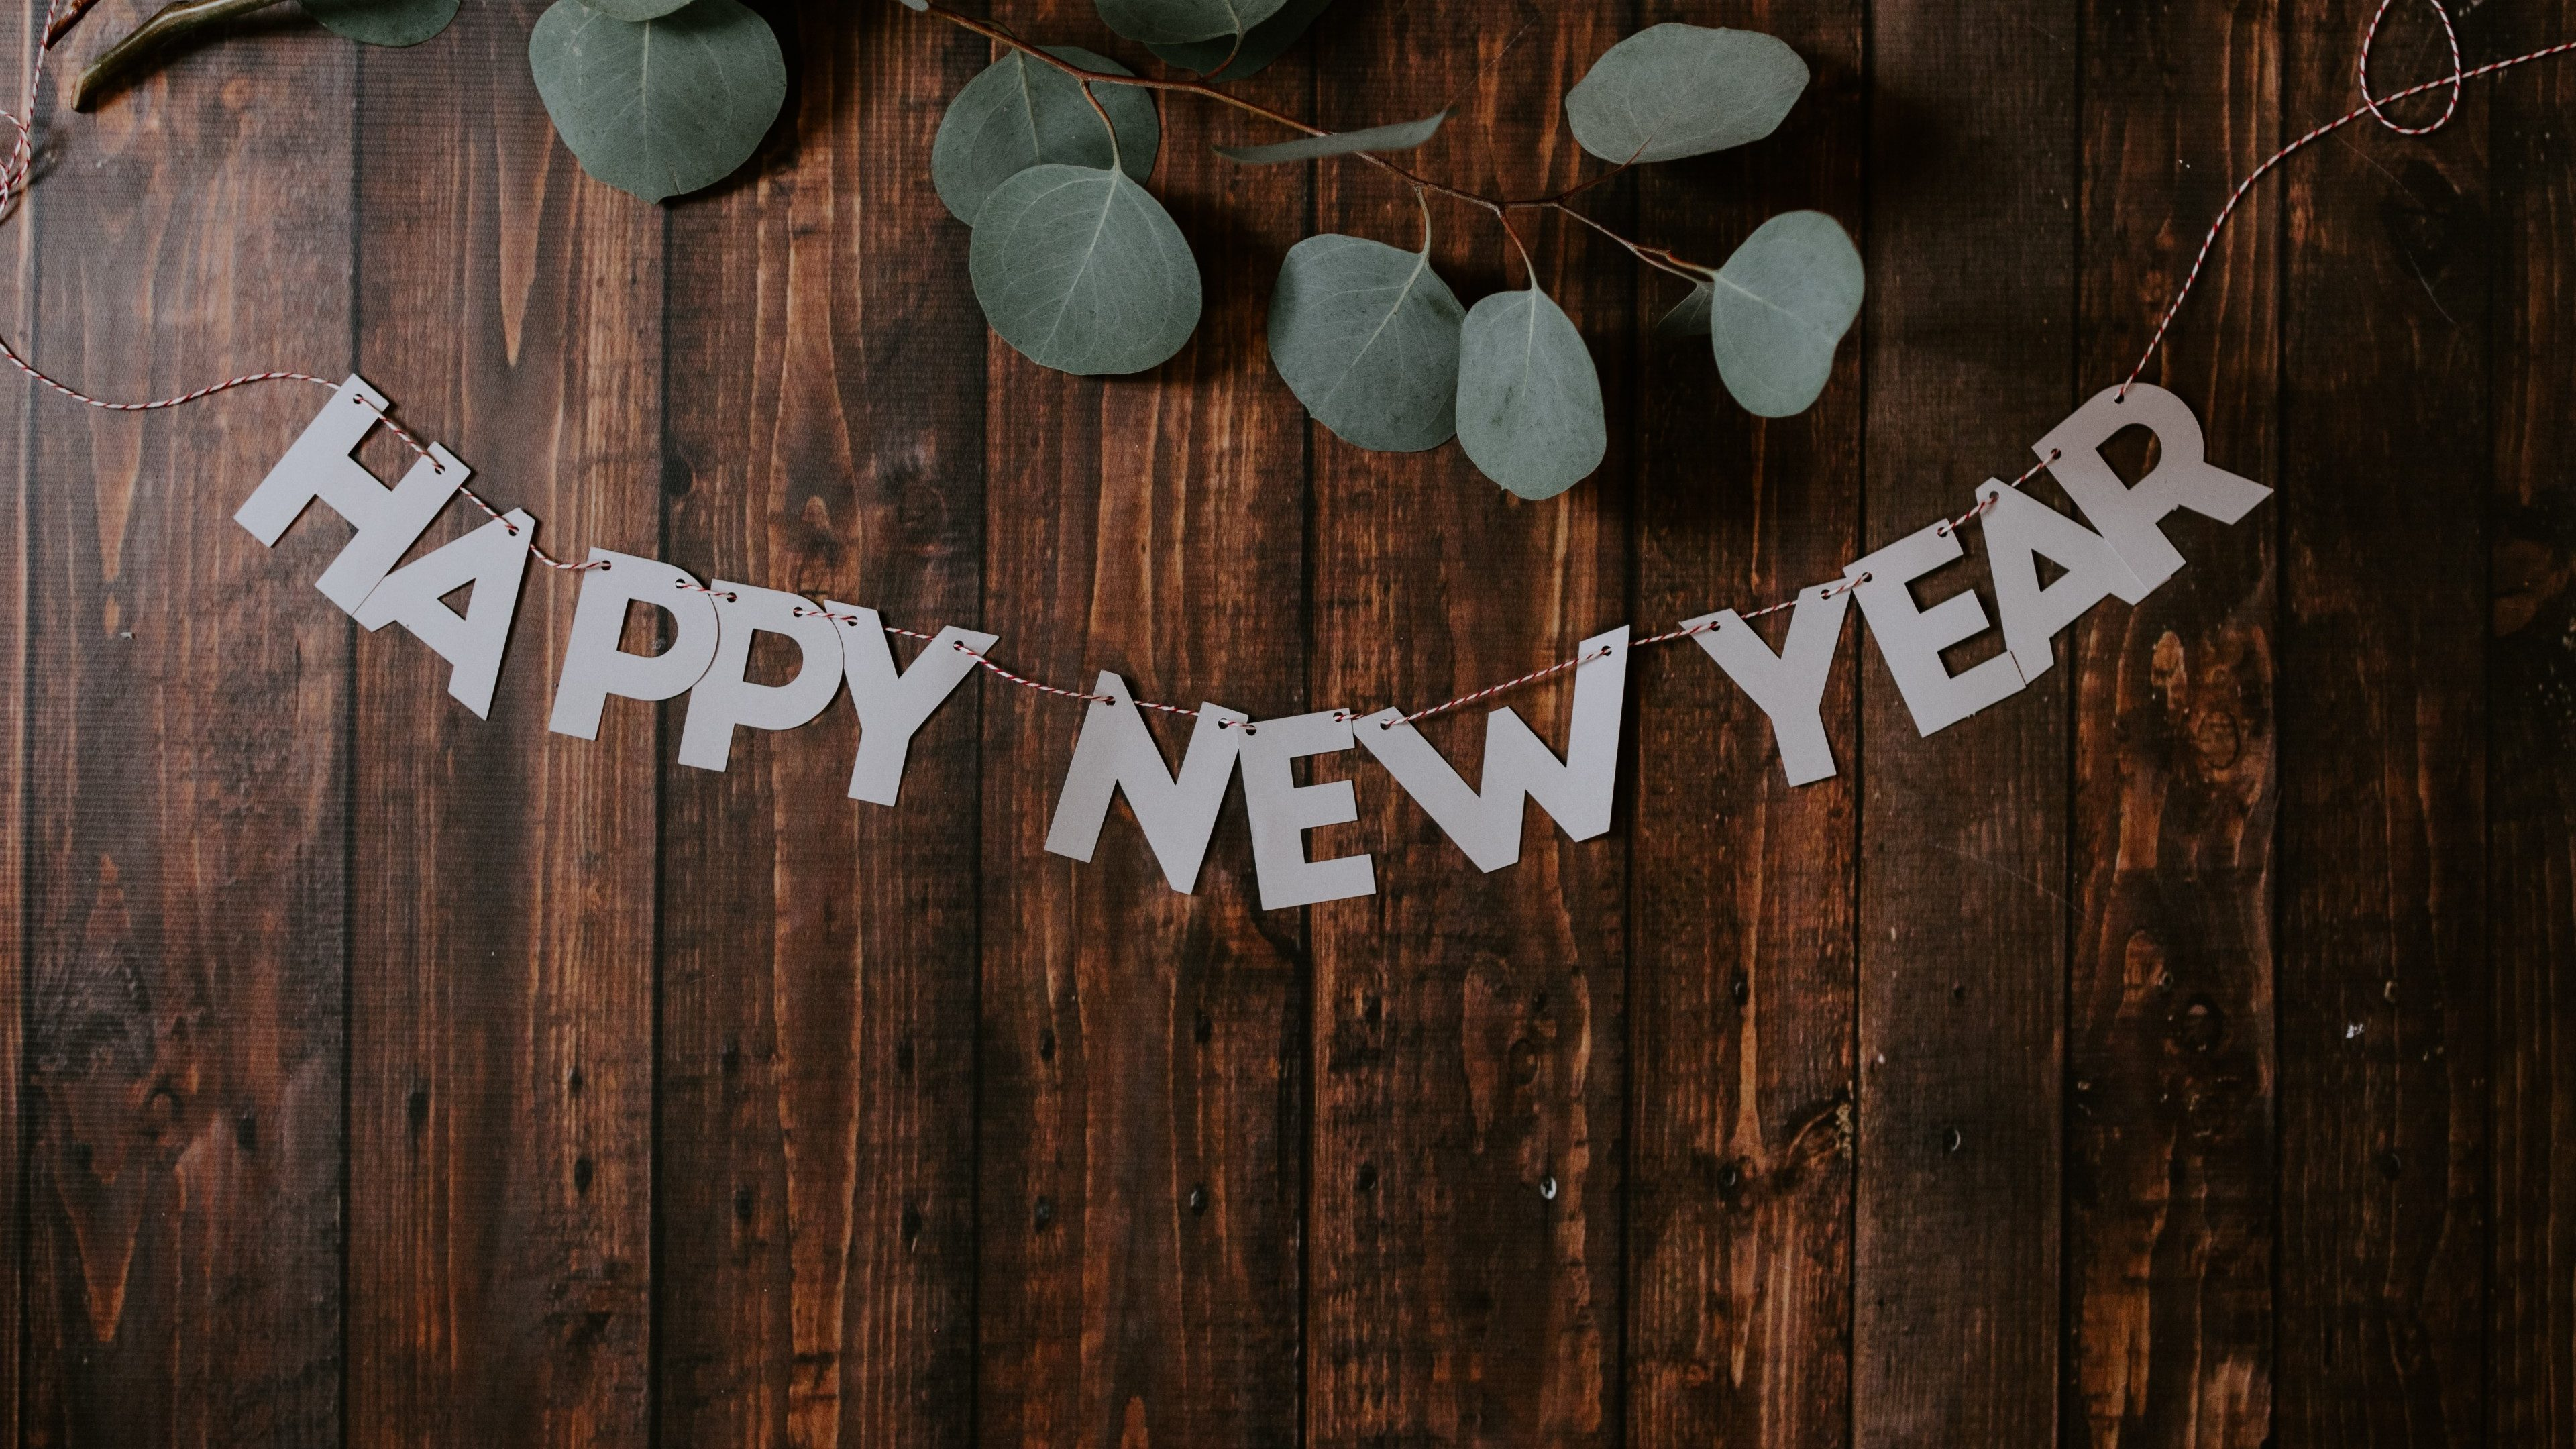 New year 2020 written on car windshield.